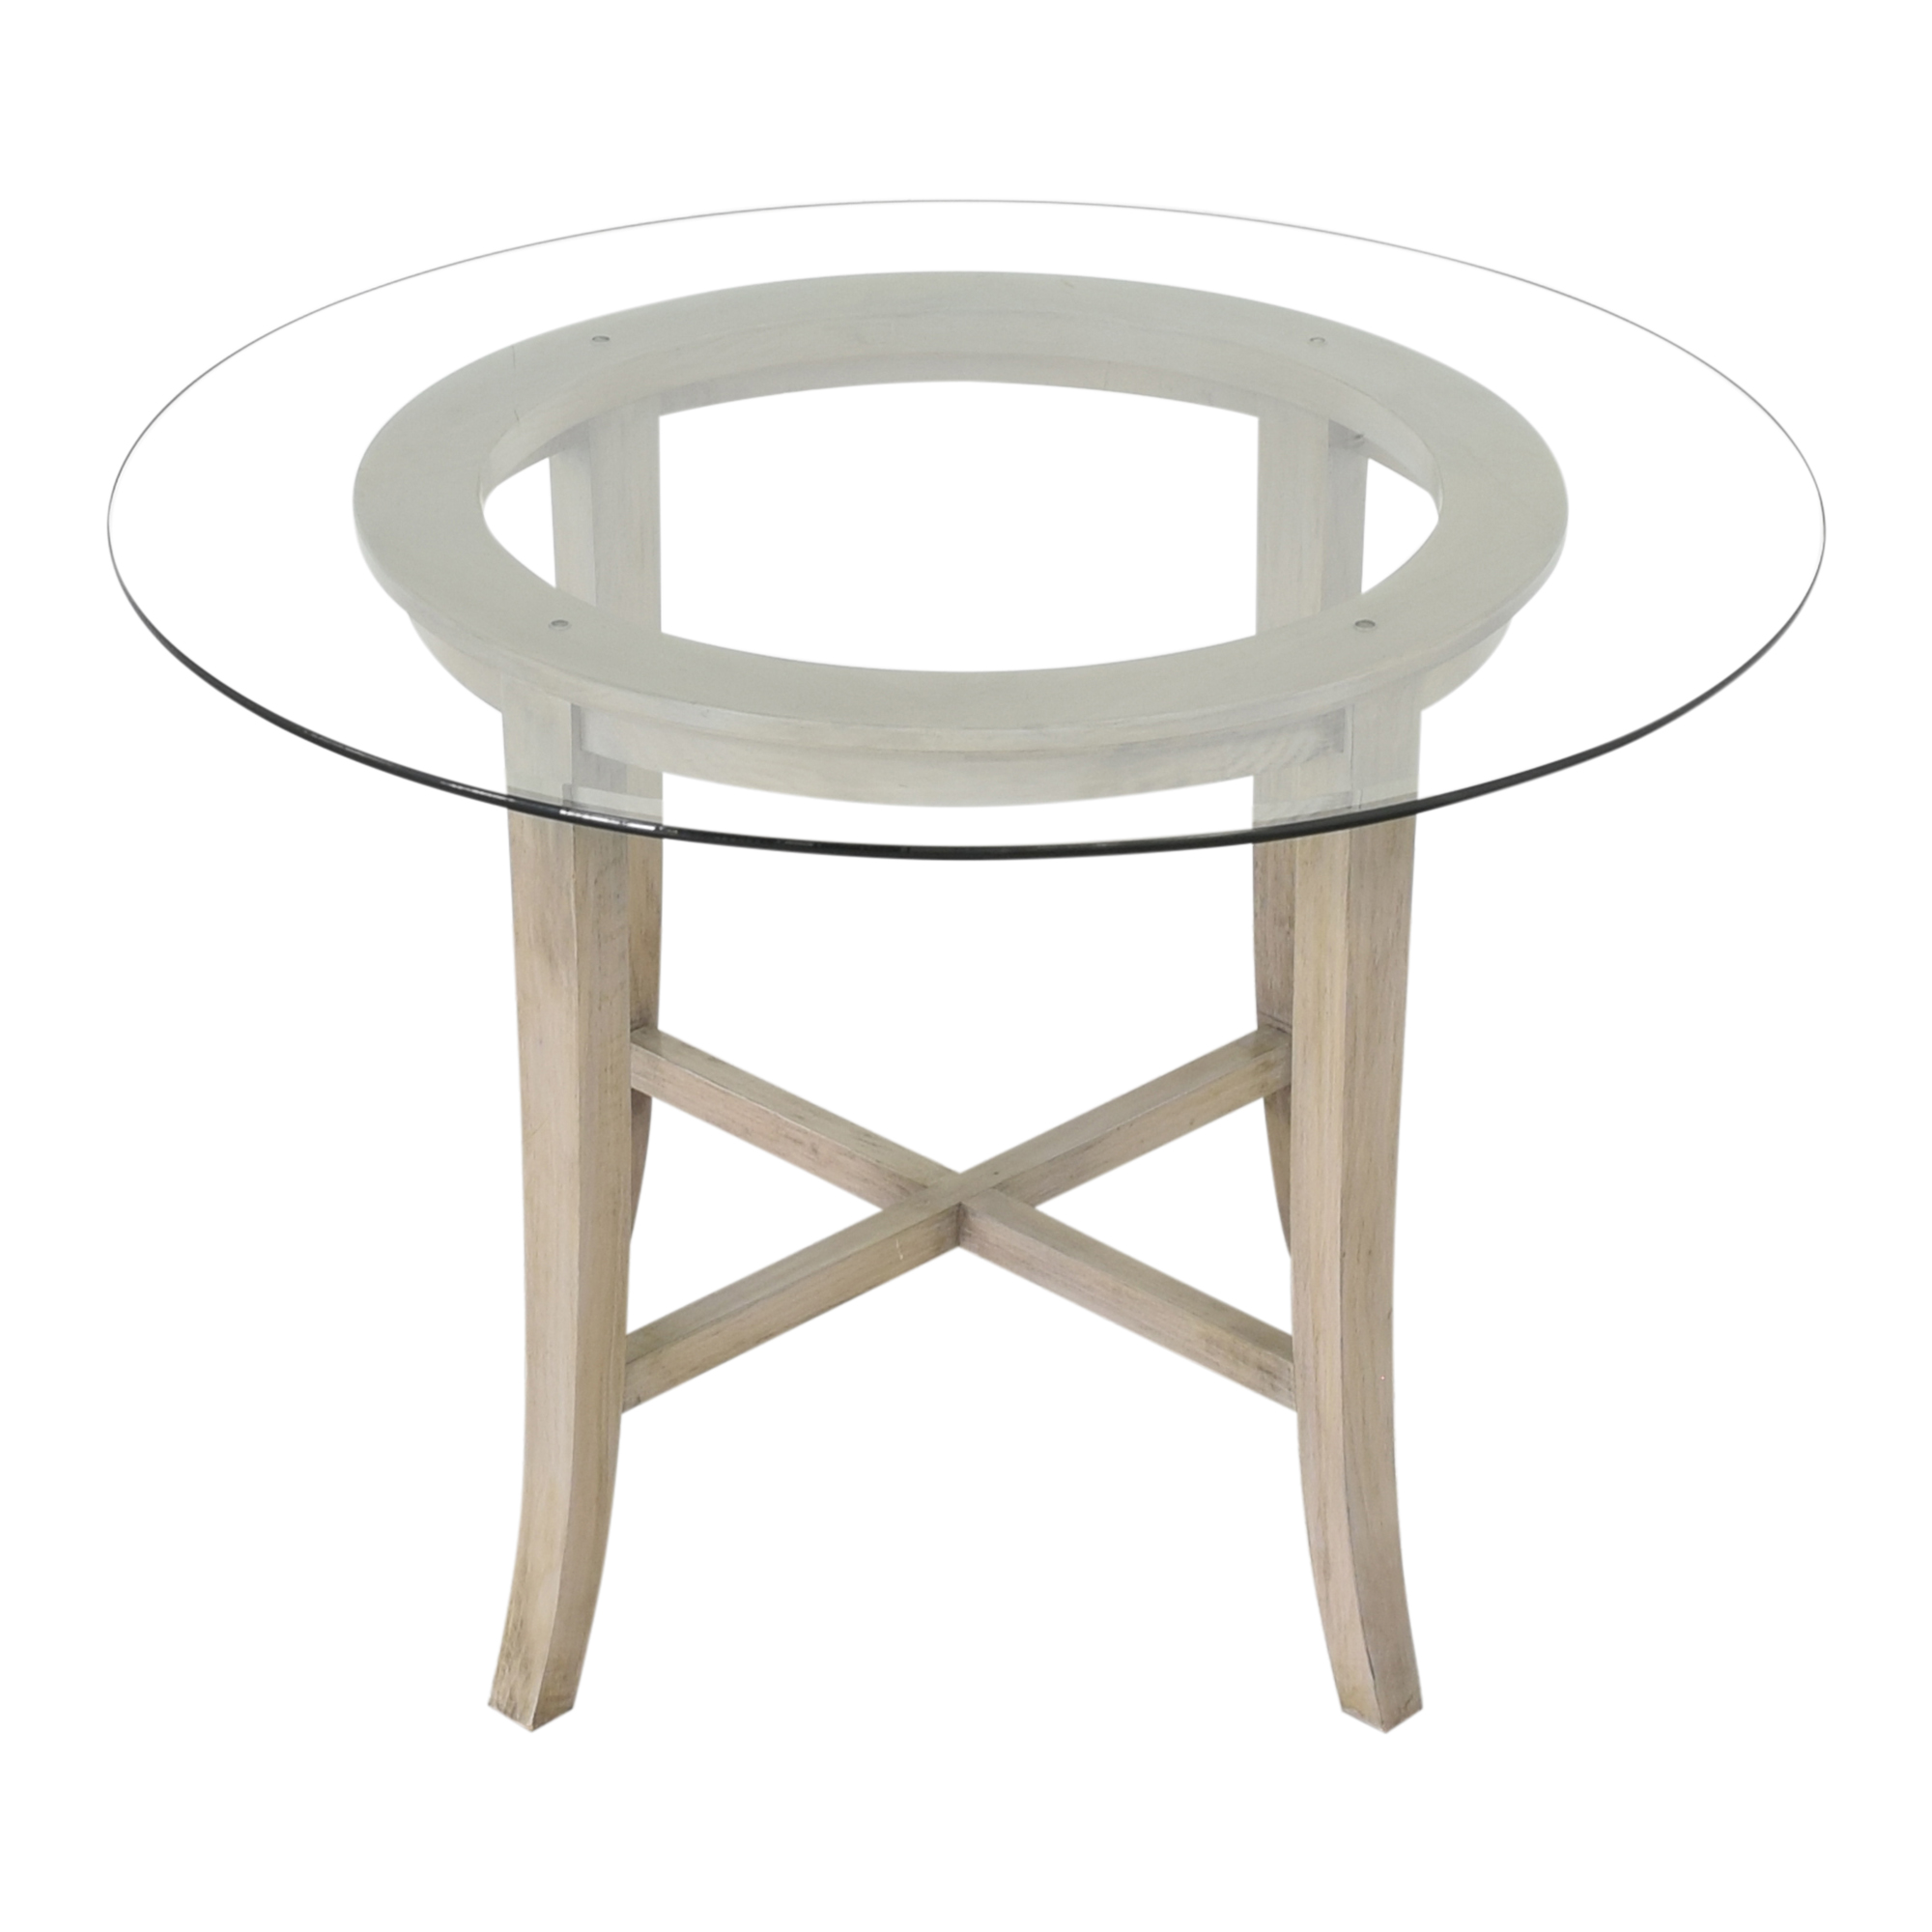 Crate & Barrel Halo Grey Round Dining Table with Glass Top / Tables